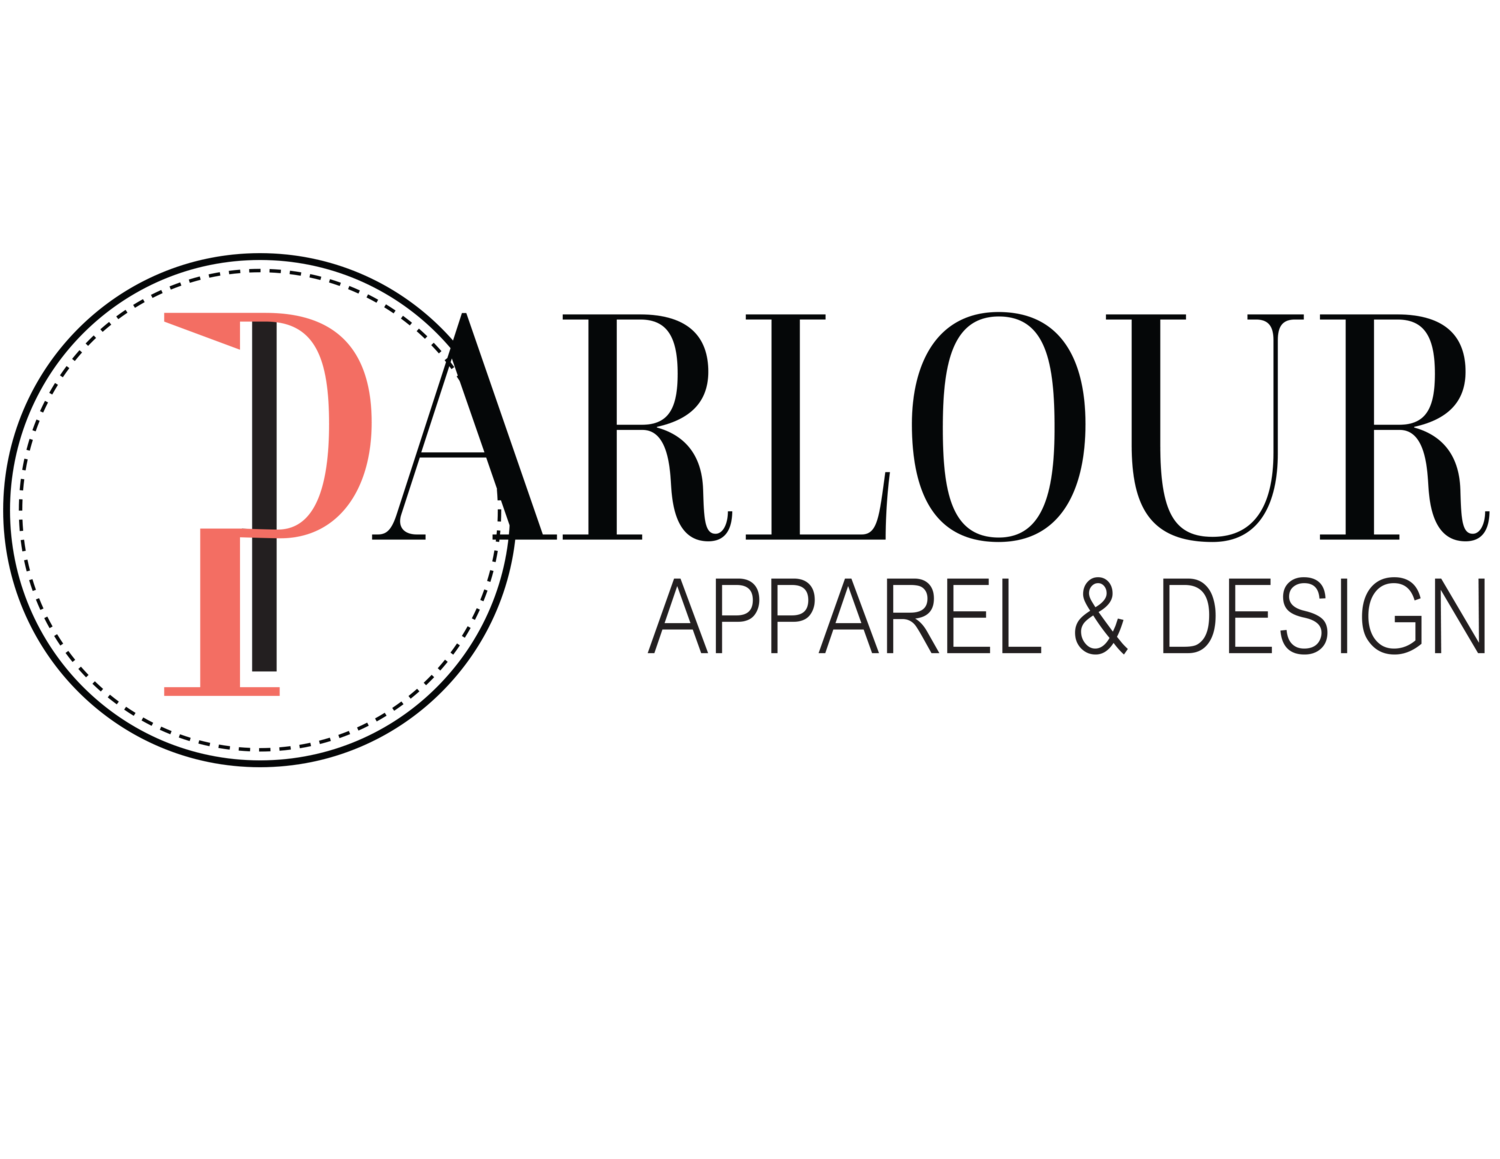 Parlour Apparel and Design